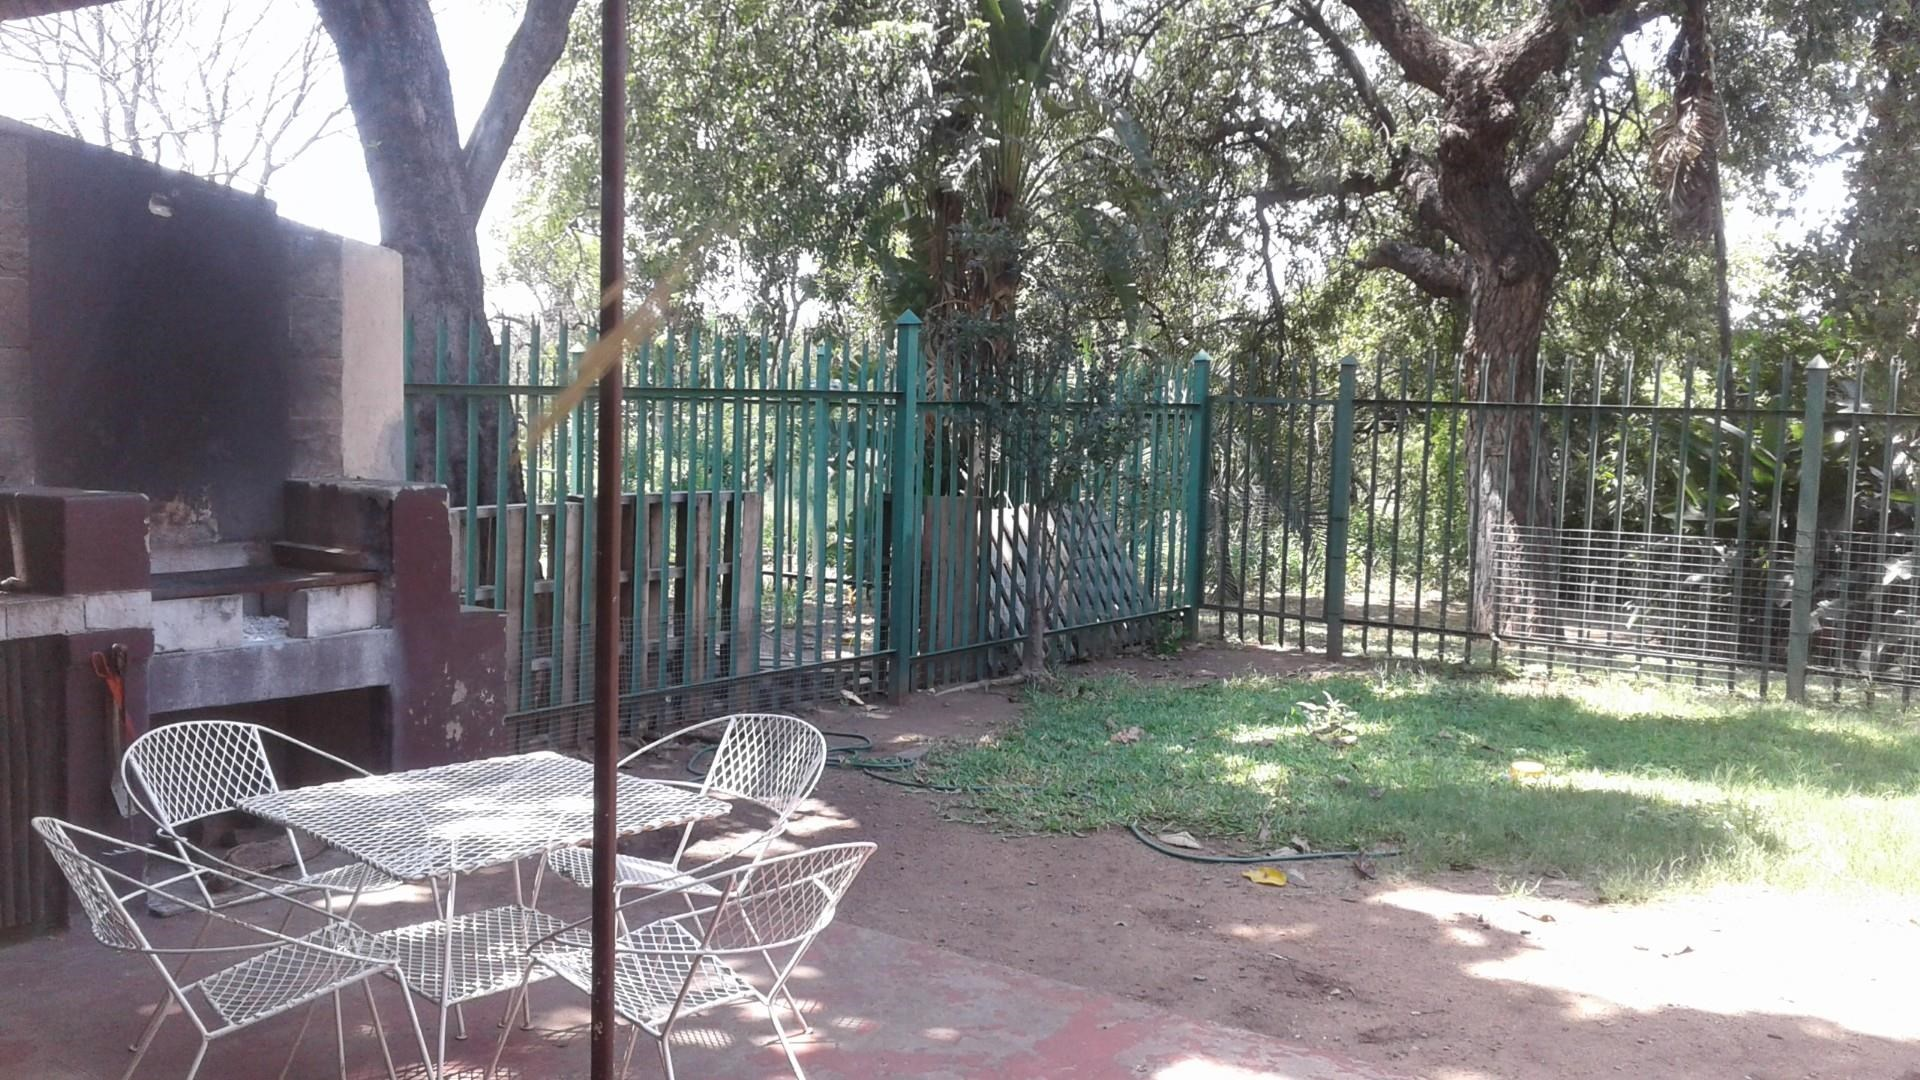 3 Bedroom Apartment for Sale in Phalaborwa